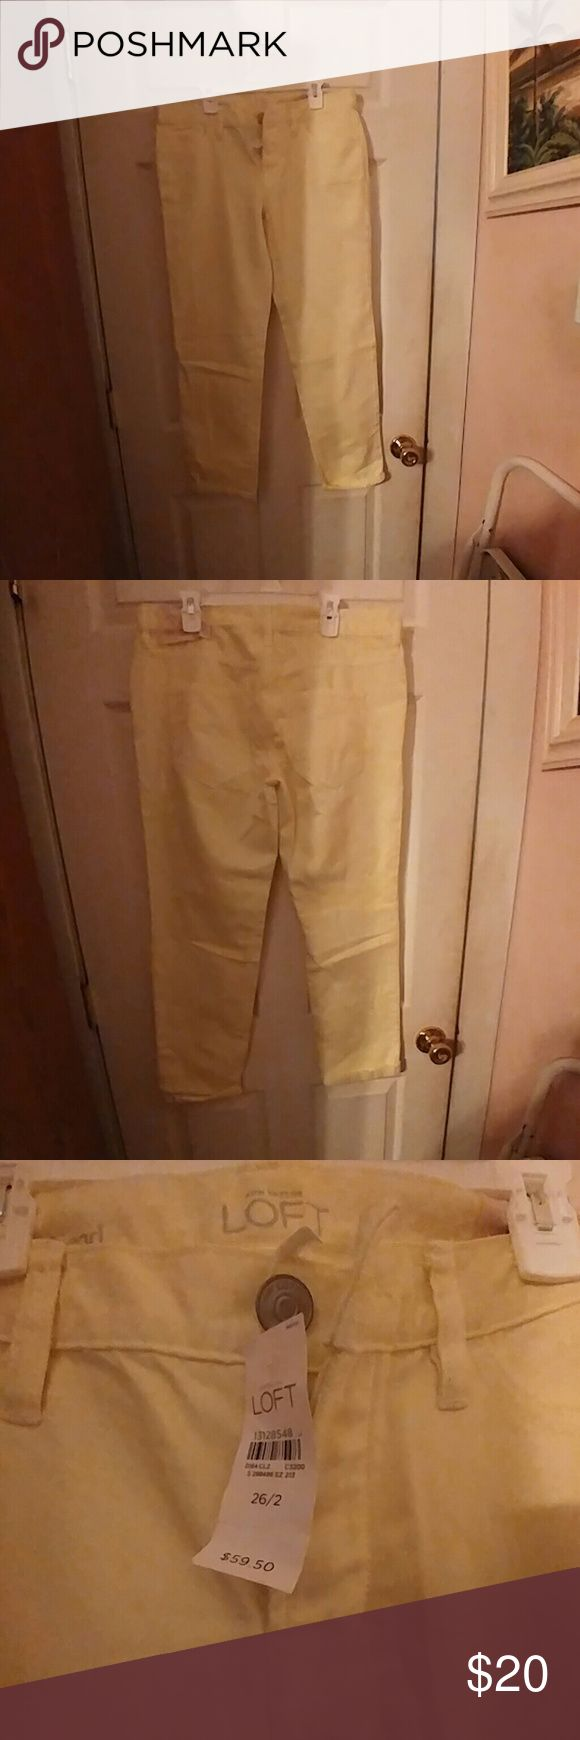 Anne Taylor LOFT Boyfriend yellow Button Fly Jeans Ann Taylor Loft Boyfriend yellow jeans womens 26/2 pale yellow button Up Fly brand New with Tags Ann Taylor Jeans Boyfriend